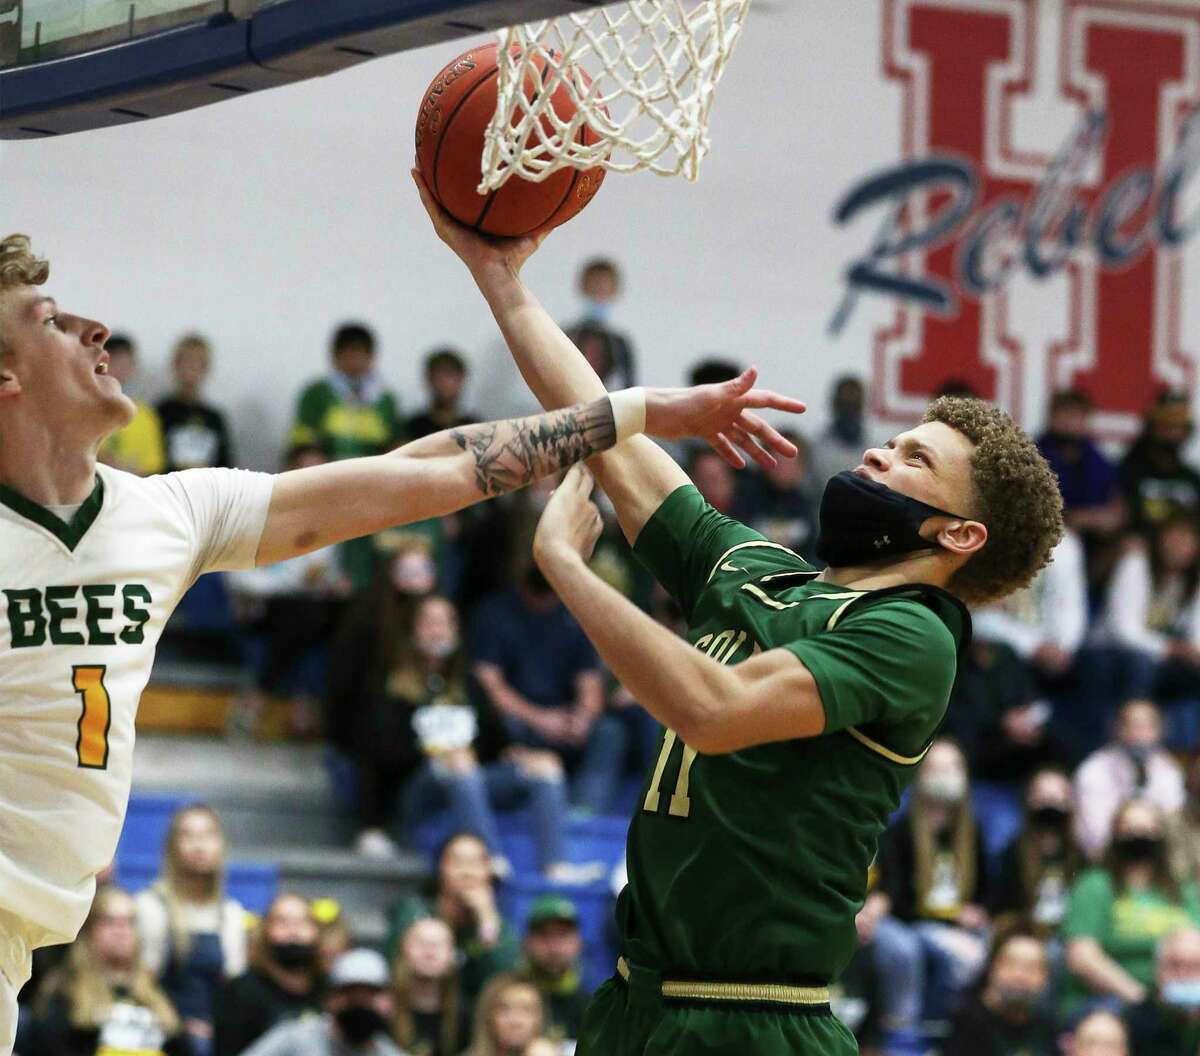 Cole's Trey Blackmore (11) goes up for a shot against Little River Academy's Kollin Mraz (01) during the Class 3A state semifinal basketball game in Buda on Tuesday, Mar. 9, 2021. Cole defeated Academy, 59-50, to return the state finals.